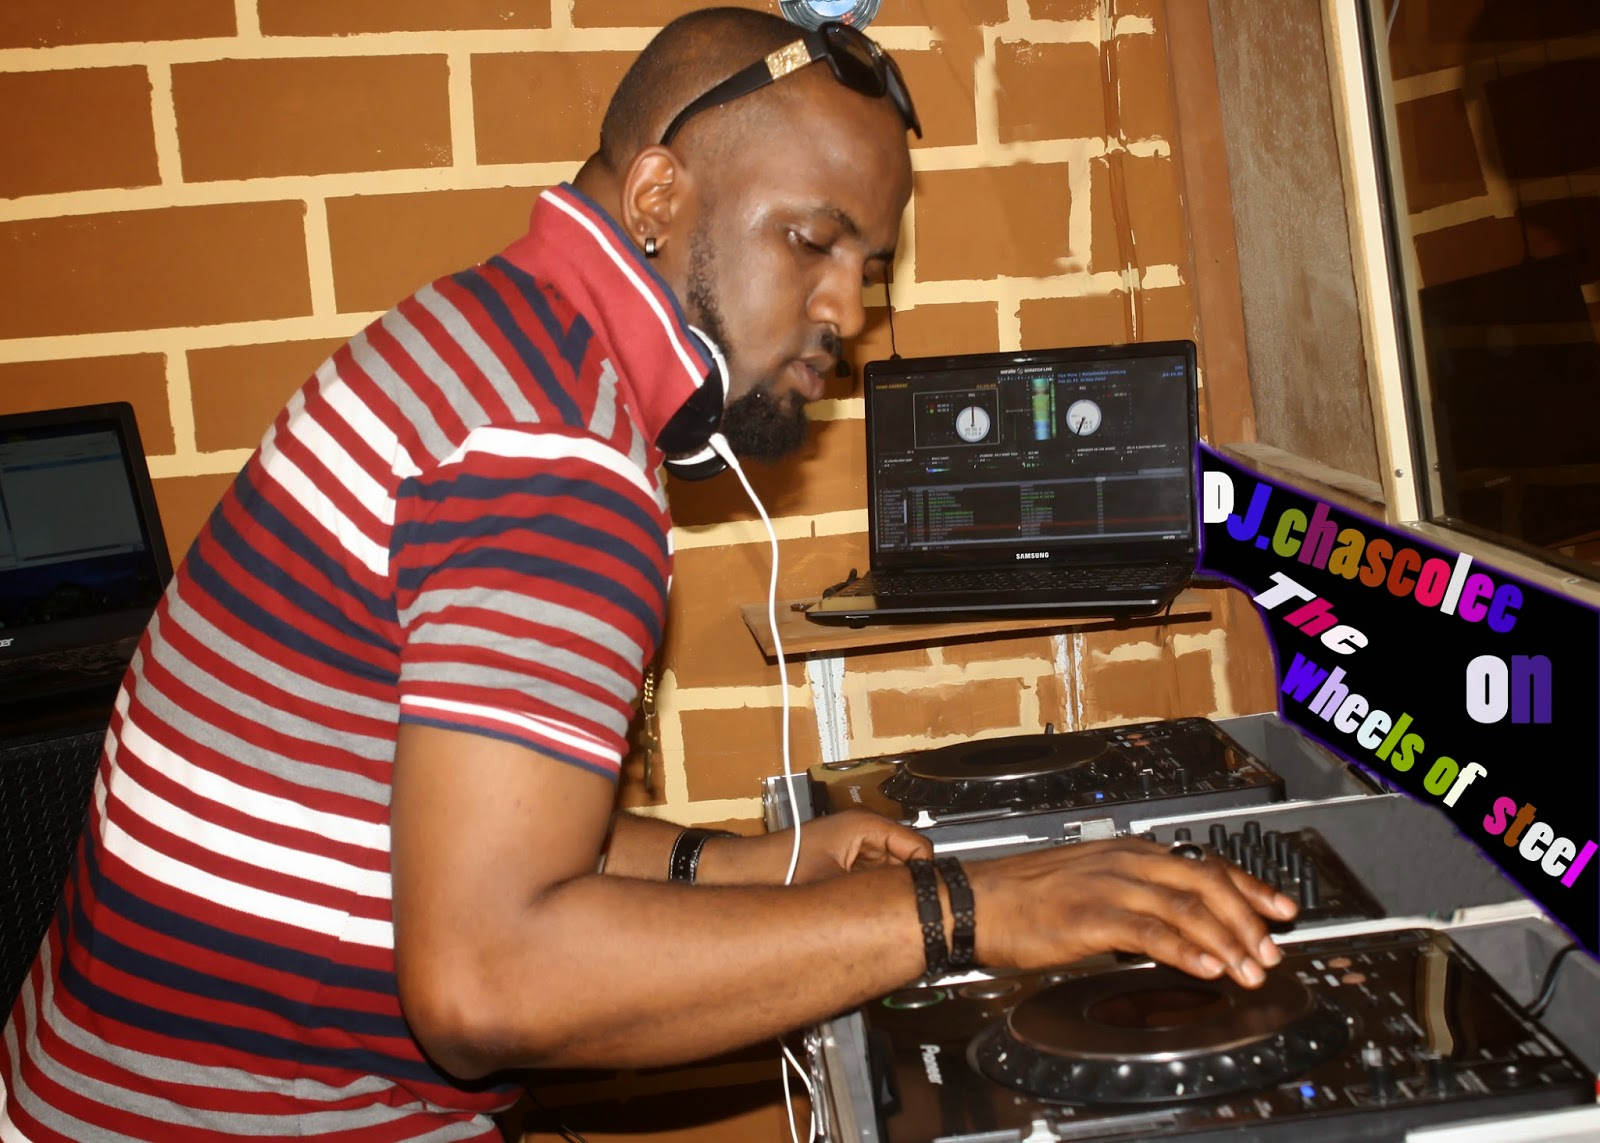 j @DjChascolee Opens New Office And Dj Studio (BOOK Dj Chascolee)